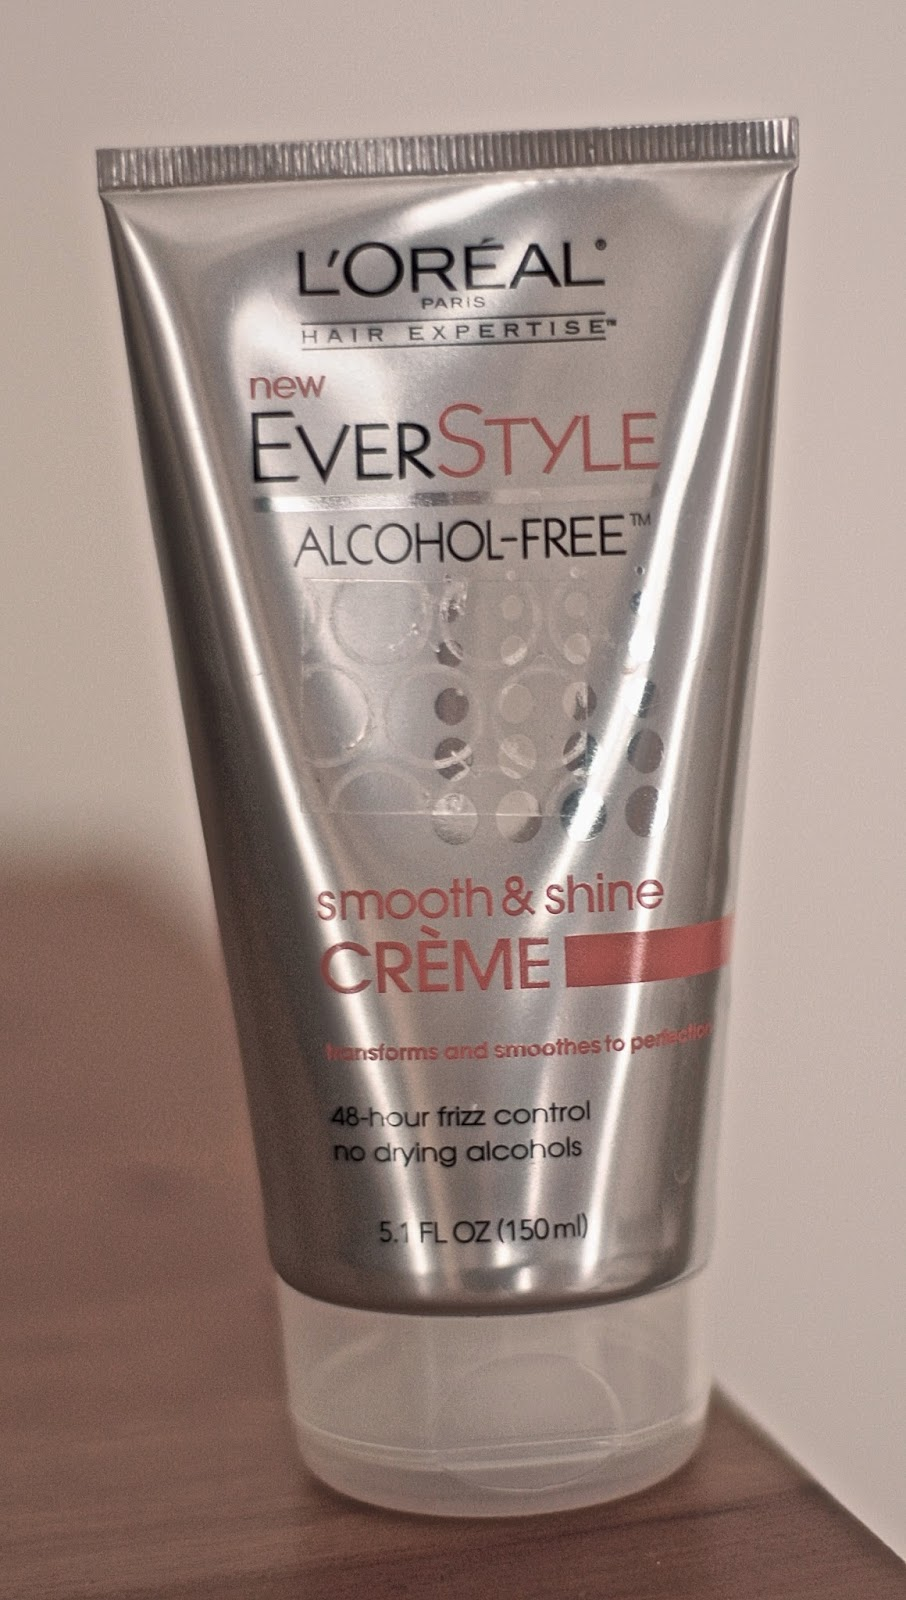 L'Oreal EverStyle Smooth & Shine Creme alcohol-free